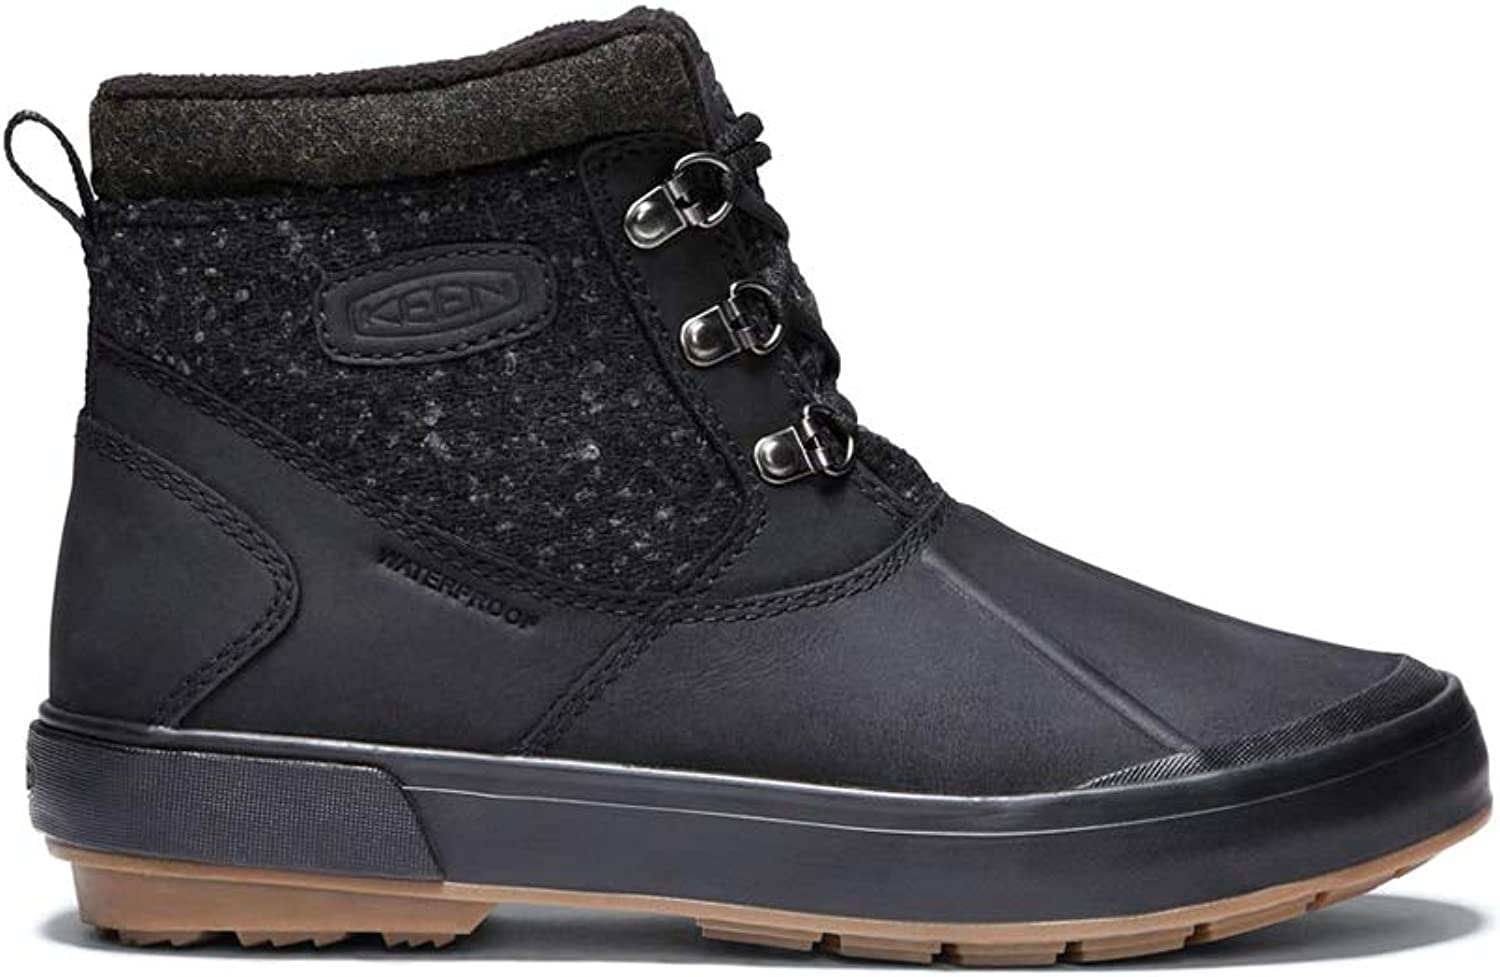 KEEN Womens Elsa II Ankle Wool Waterproof